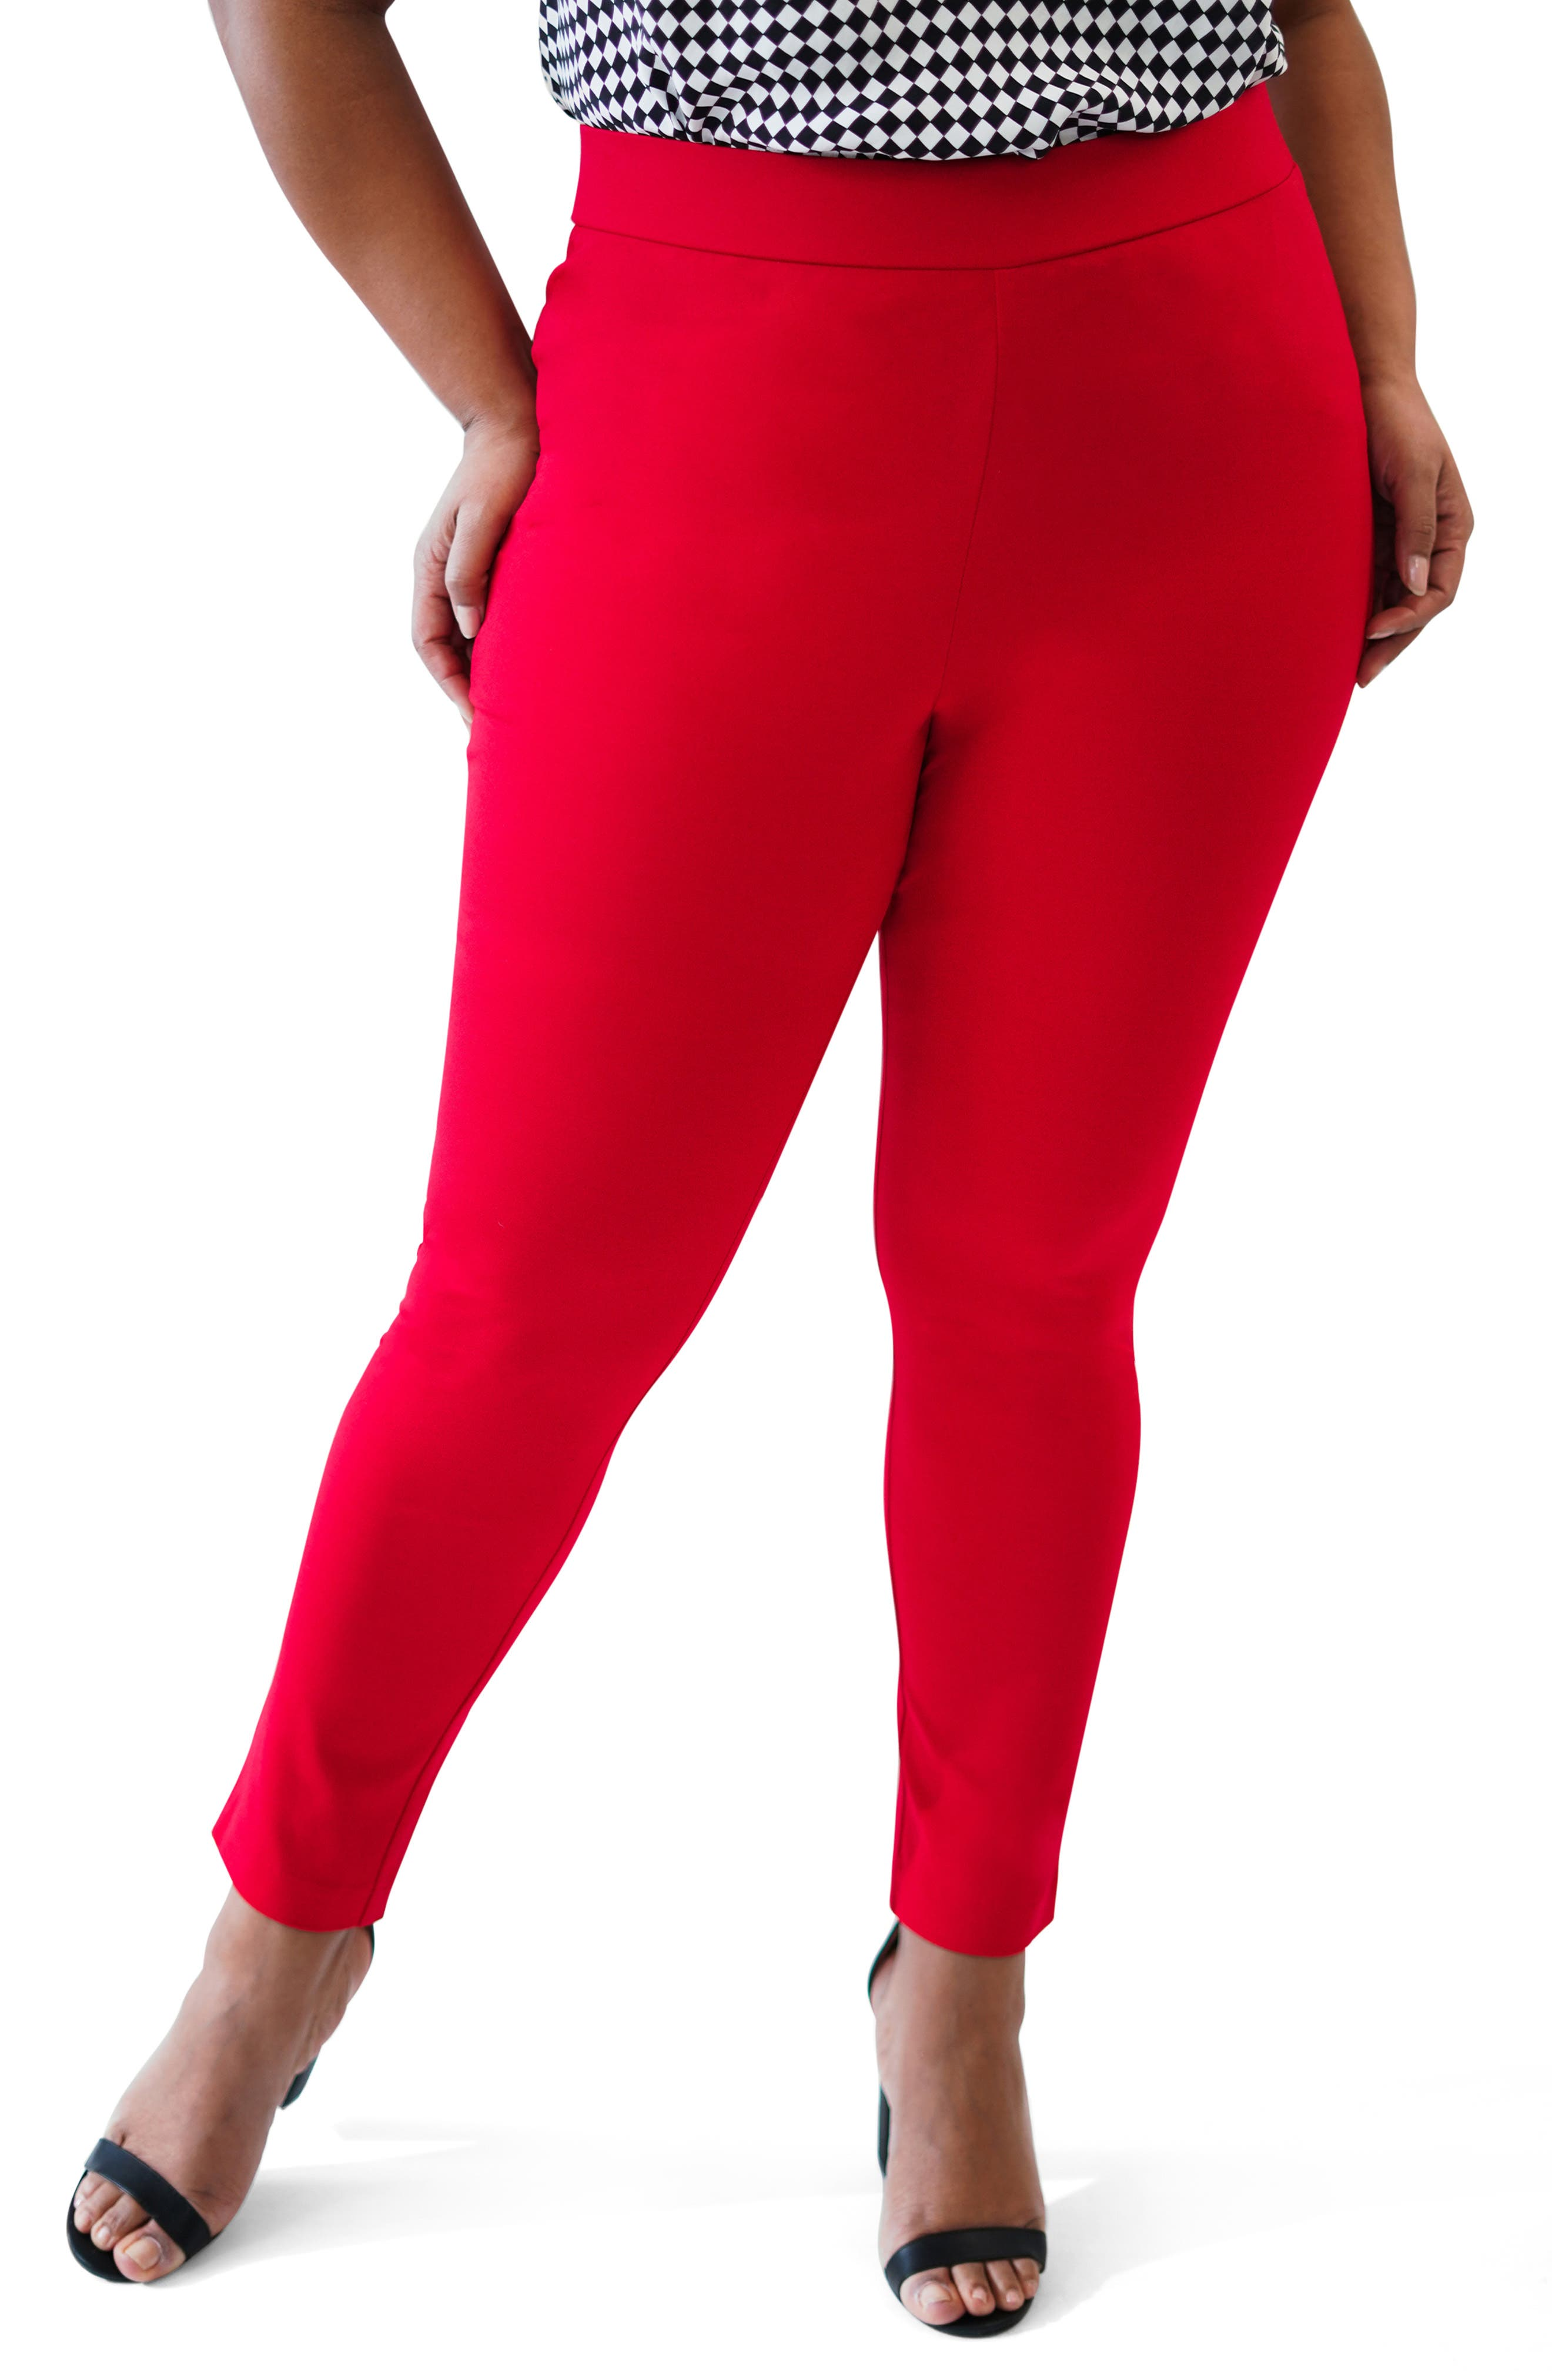 1950s Clothing Plus Size Womens Maree Pour Toi Compression Skinny Pants $79.00 AT vintagedancer.com